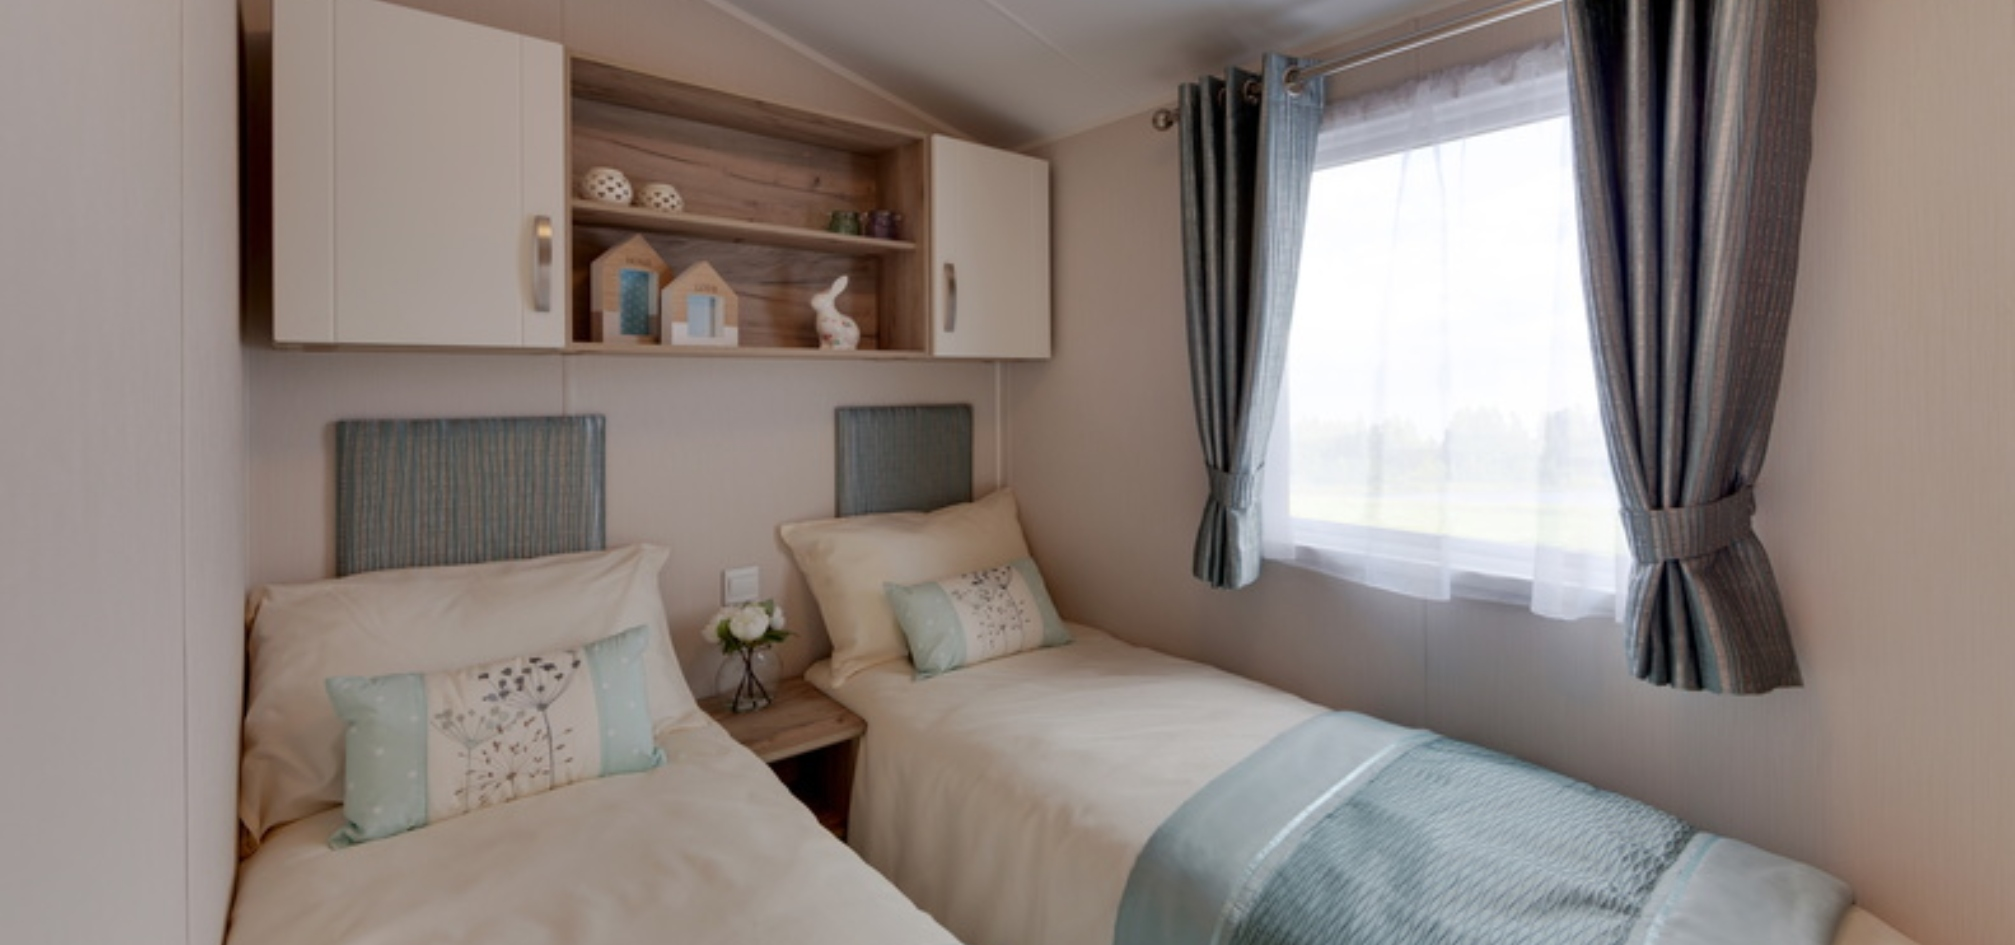 a double room with twin single beds perpendicular to a window with shelving above the beds